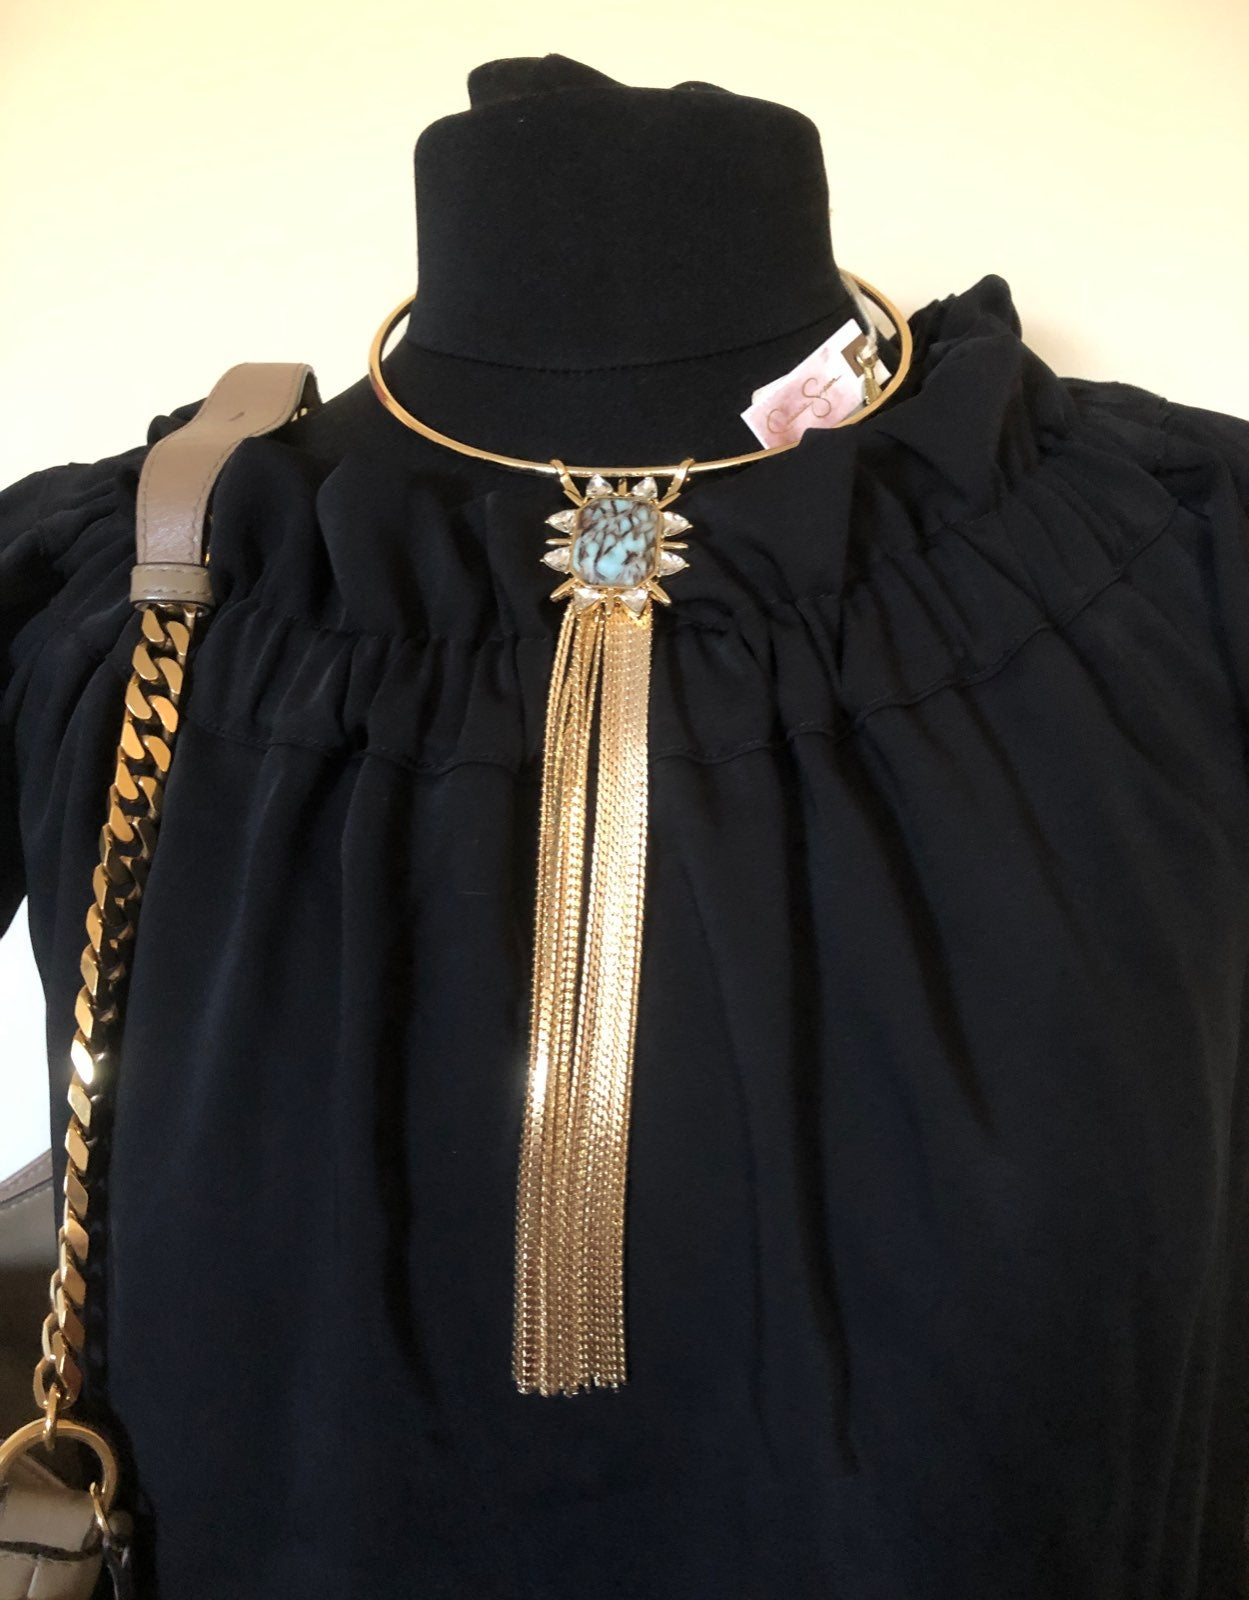 new jessica simpson necklace gold turquo